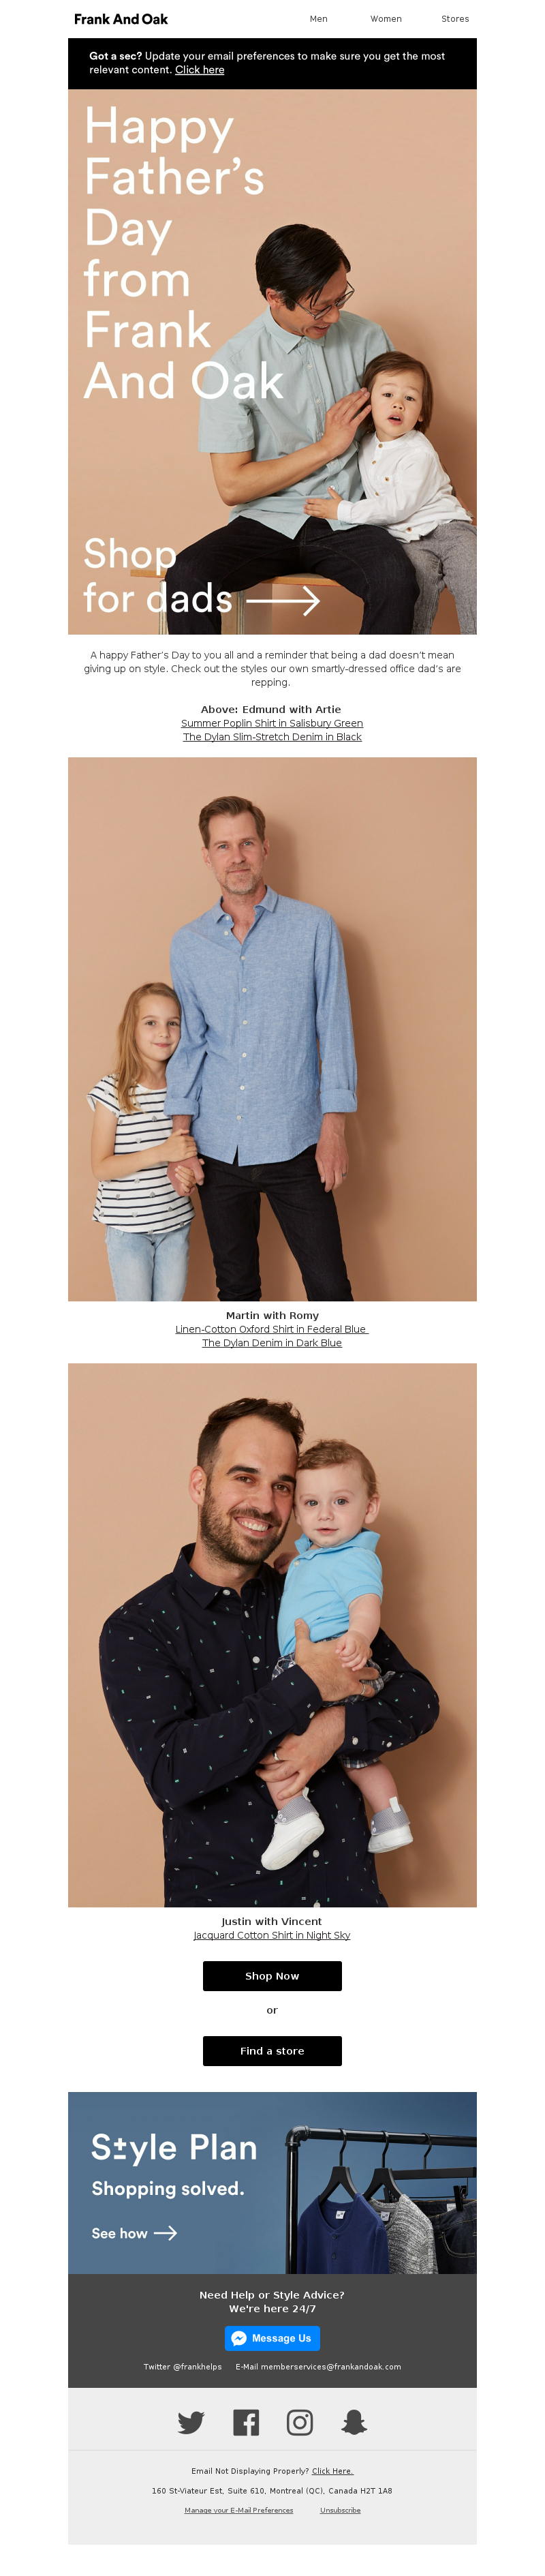 Father's day email example from Frank and Oak